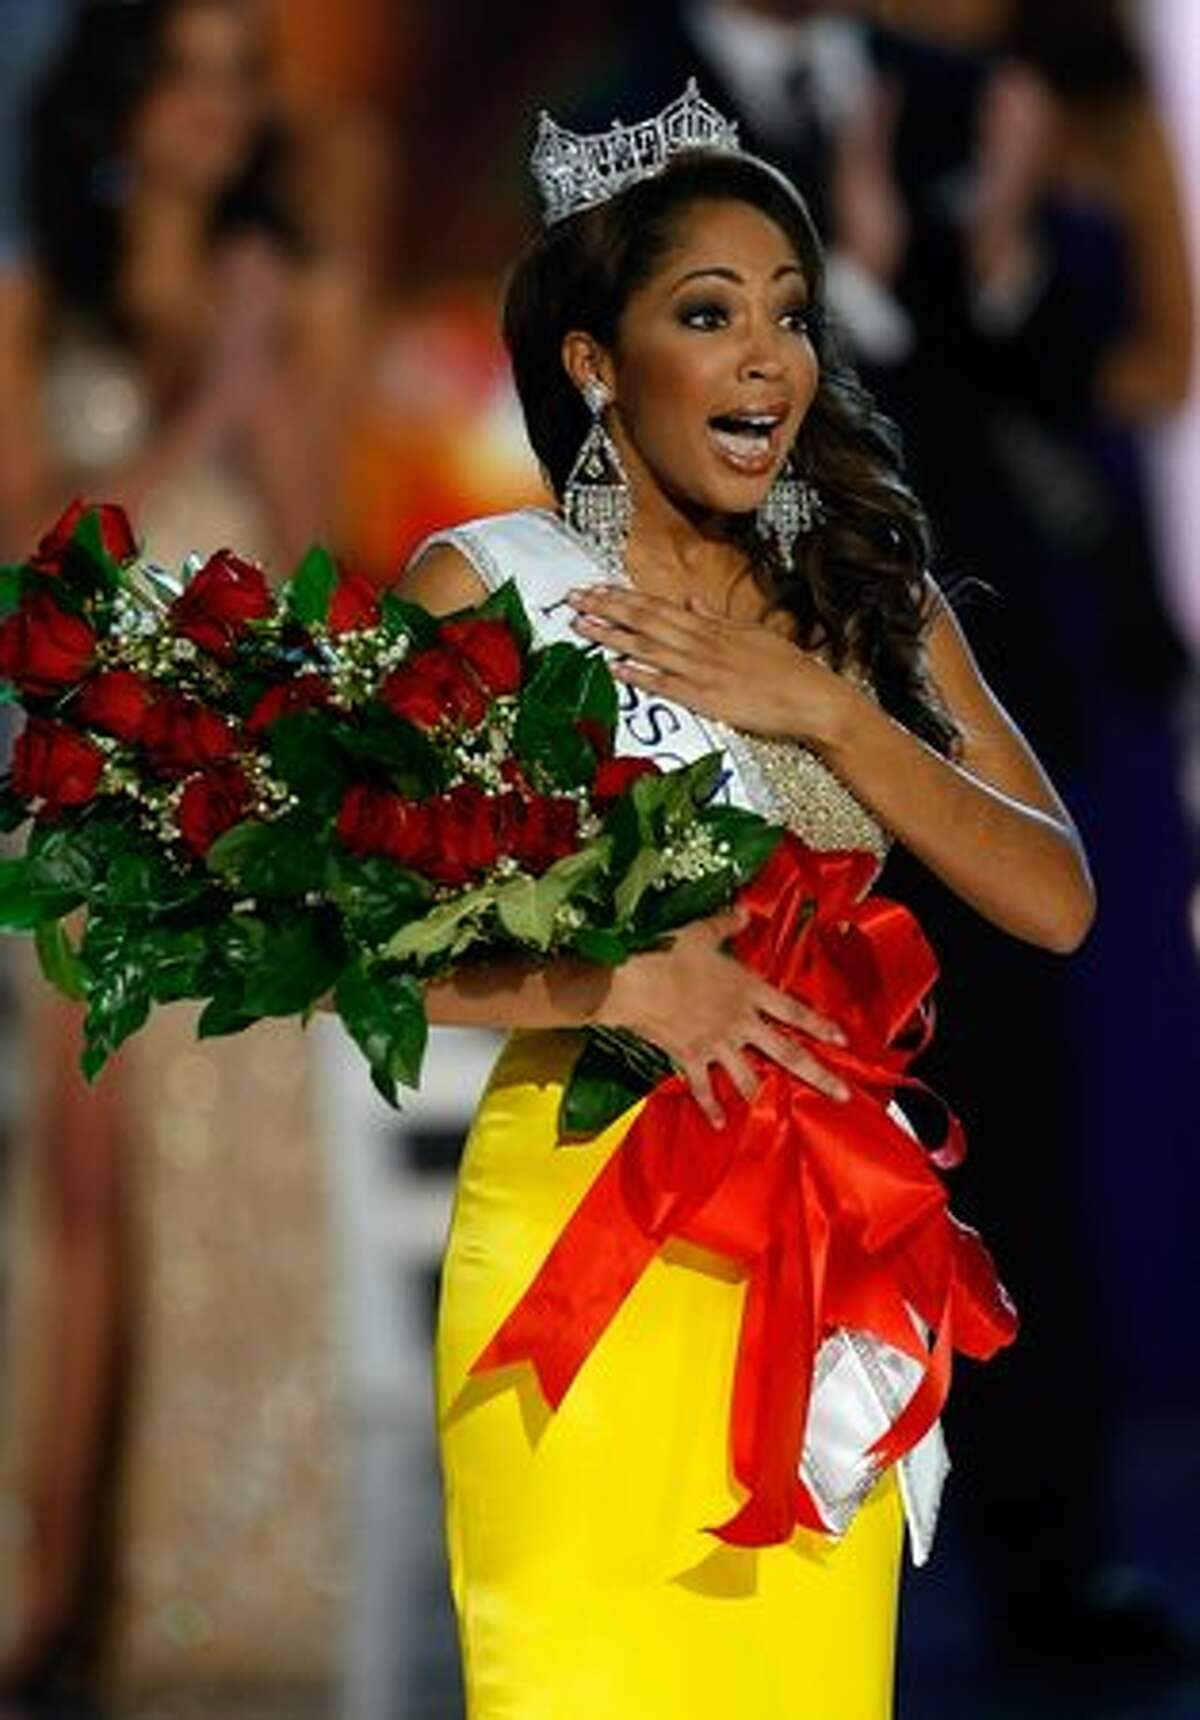 Caressa Cameron, Miss Virginia, reacts after being crowned Miss America.